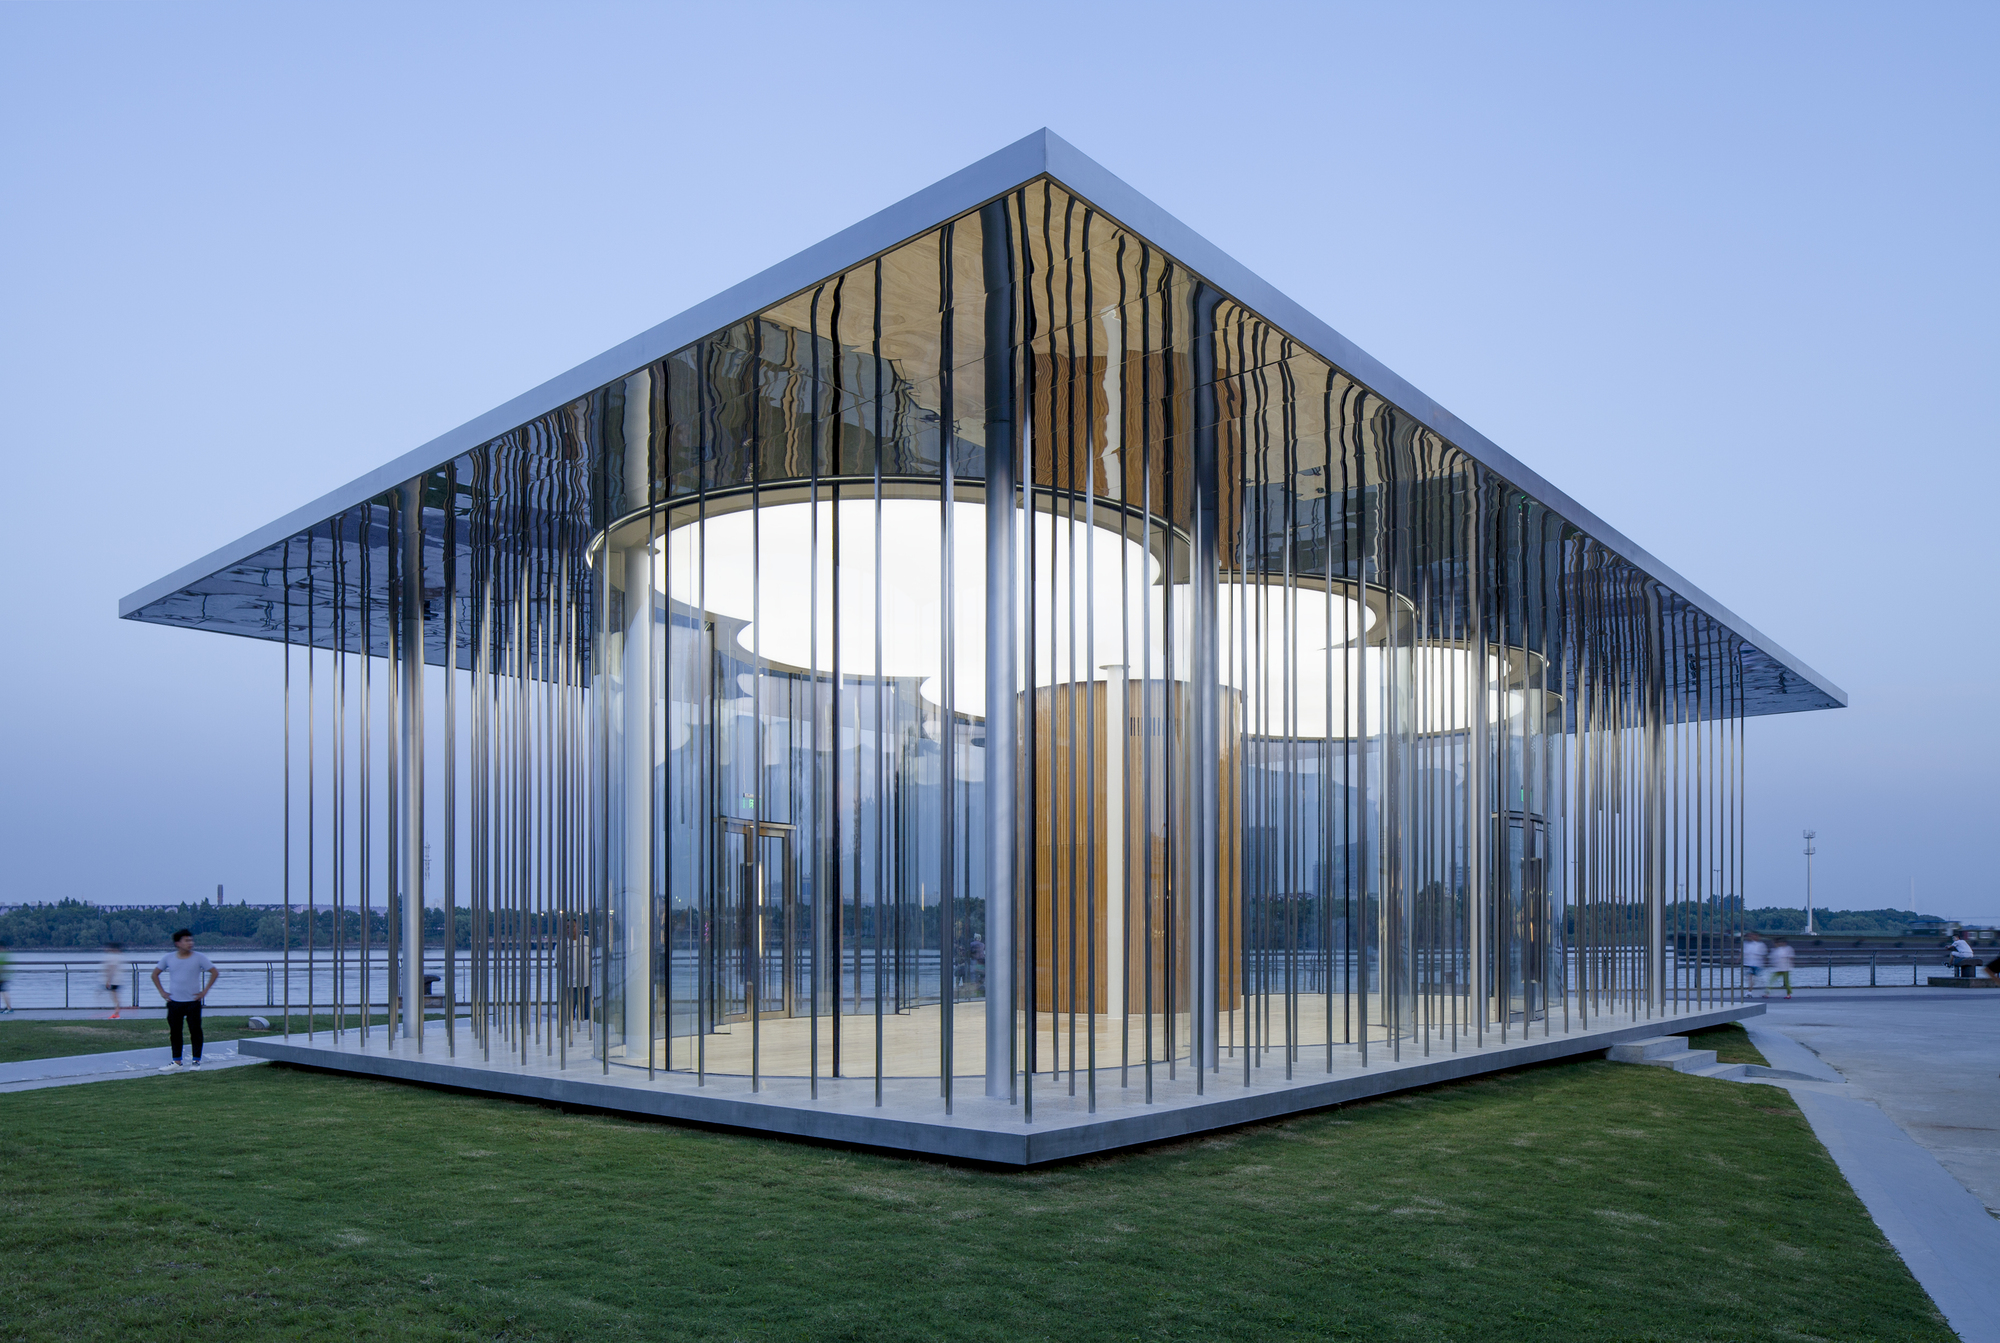 Schmidt hammer lassen architects design floating cloud - Architectural designers near me ...